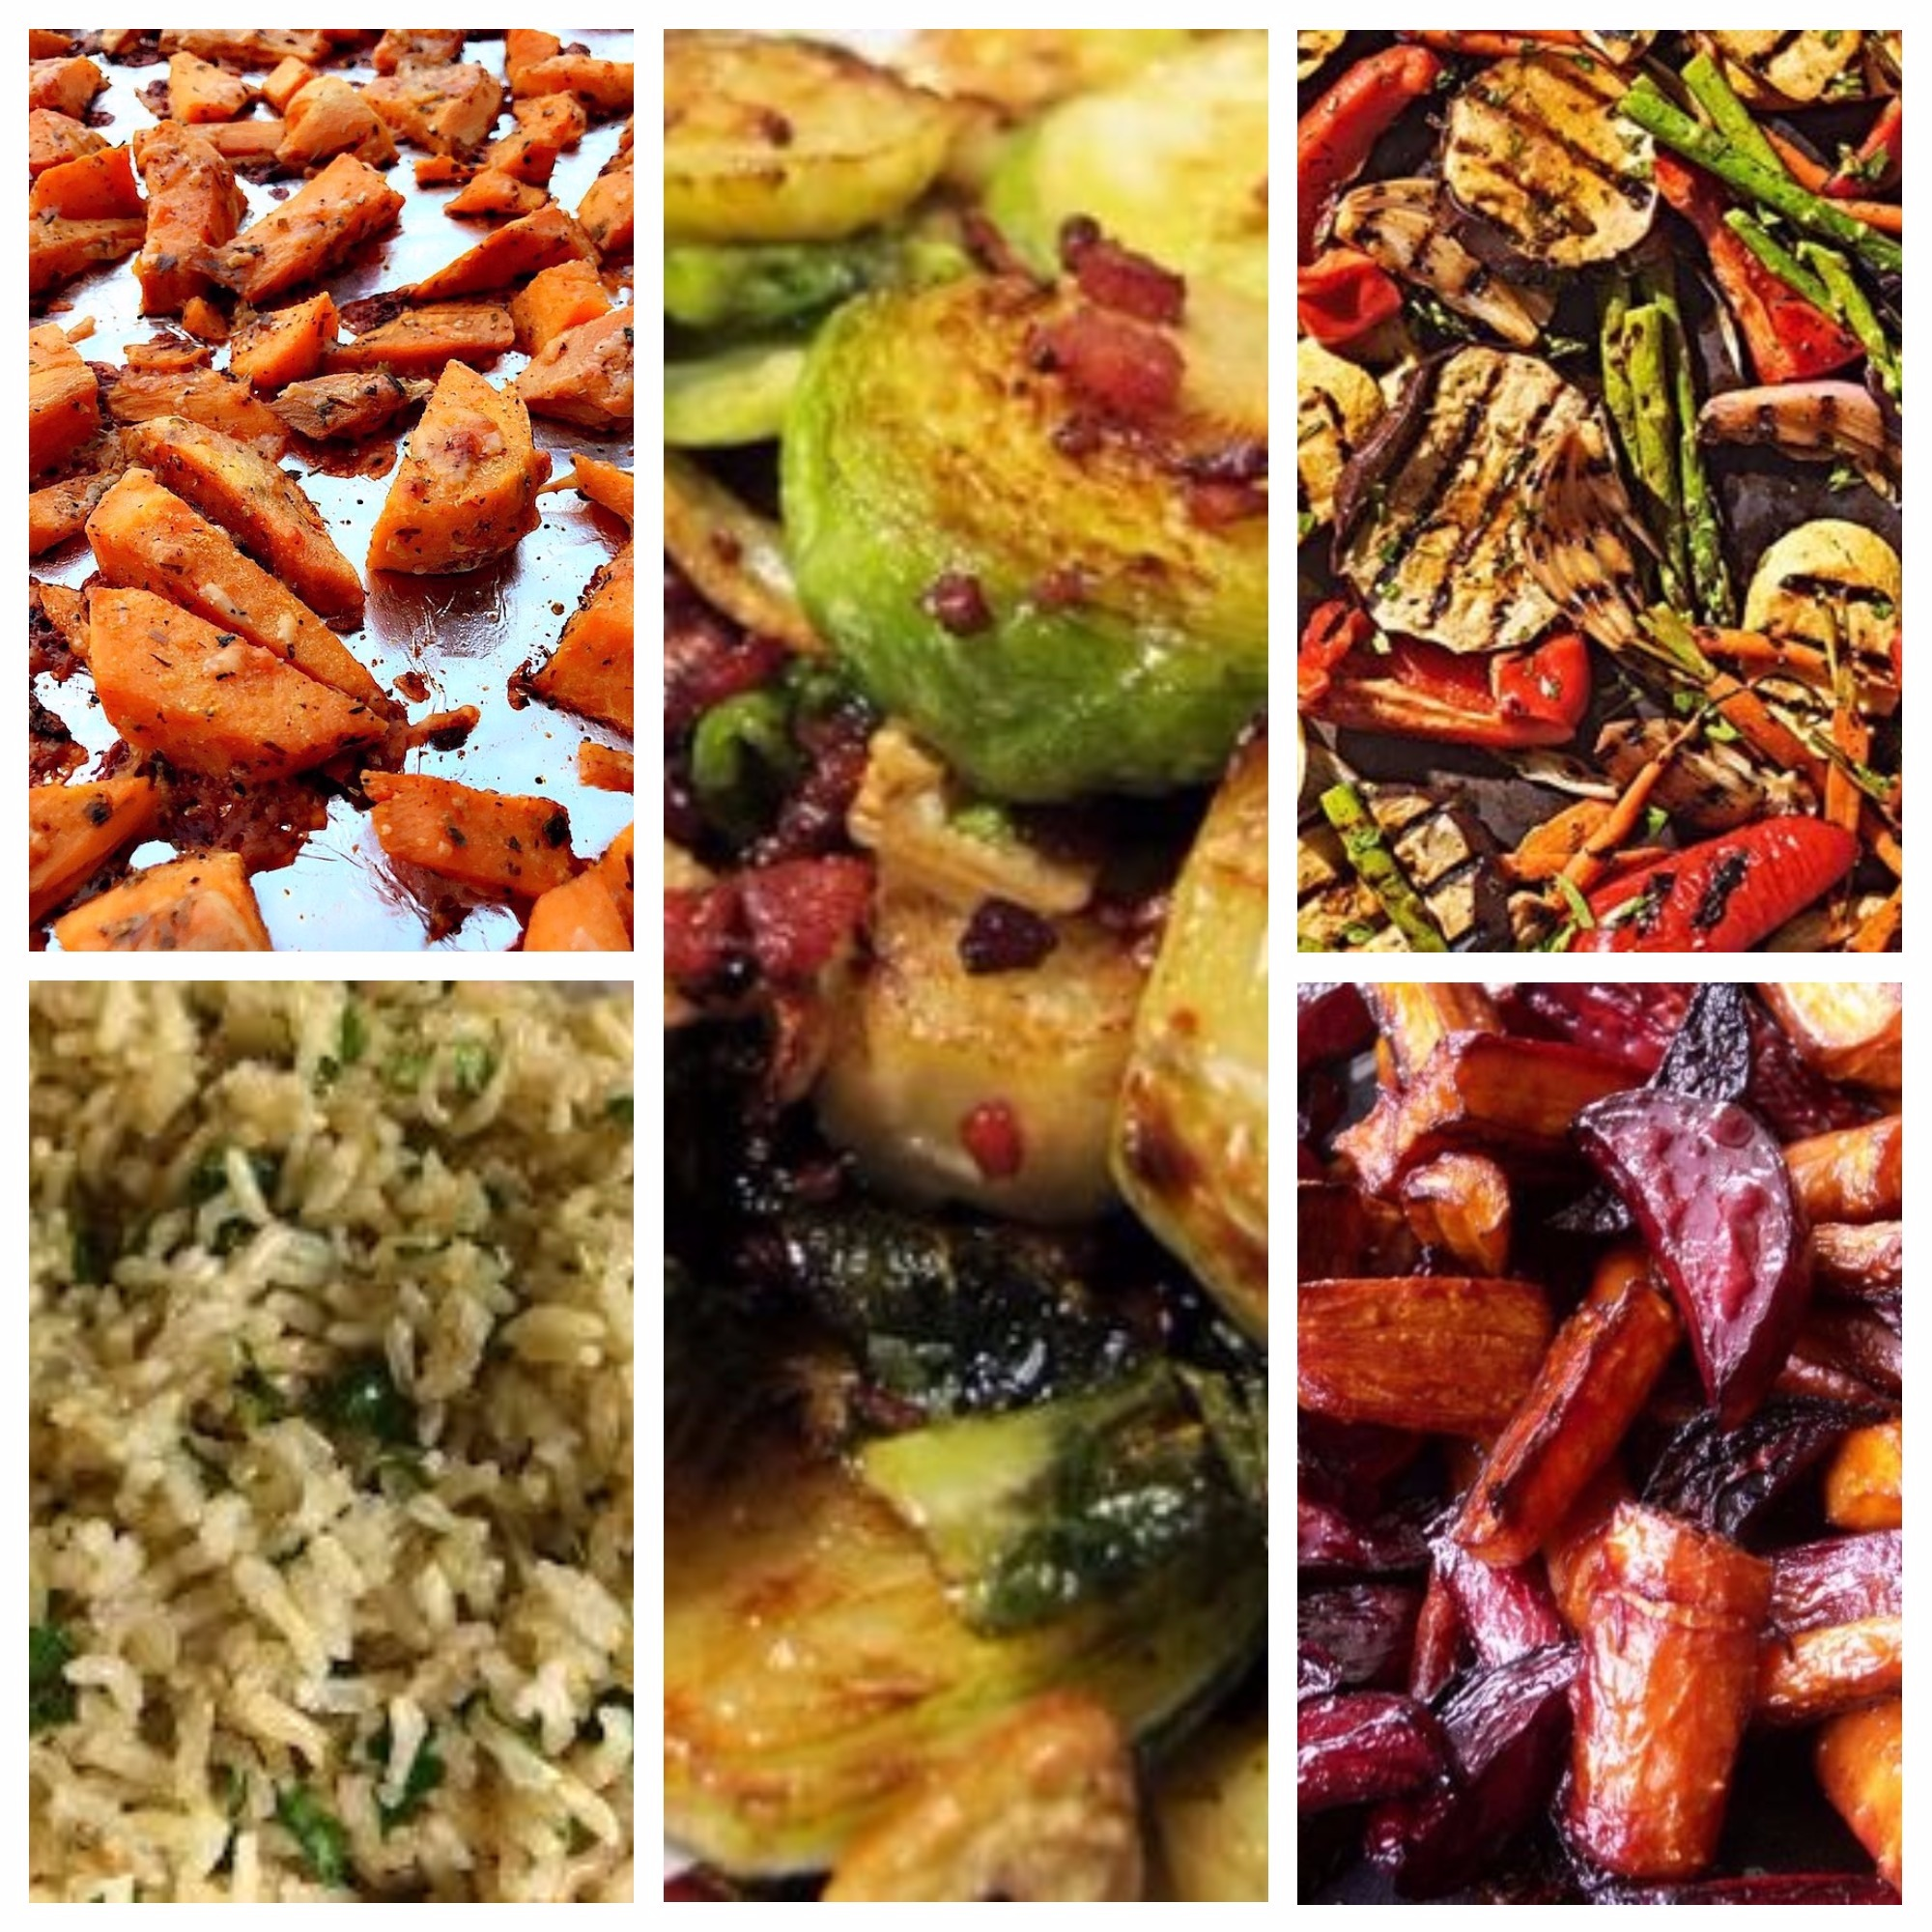 Tasty Prix Fixe Side Delights: NYC Drop-Off Lunch Catering